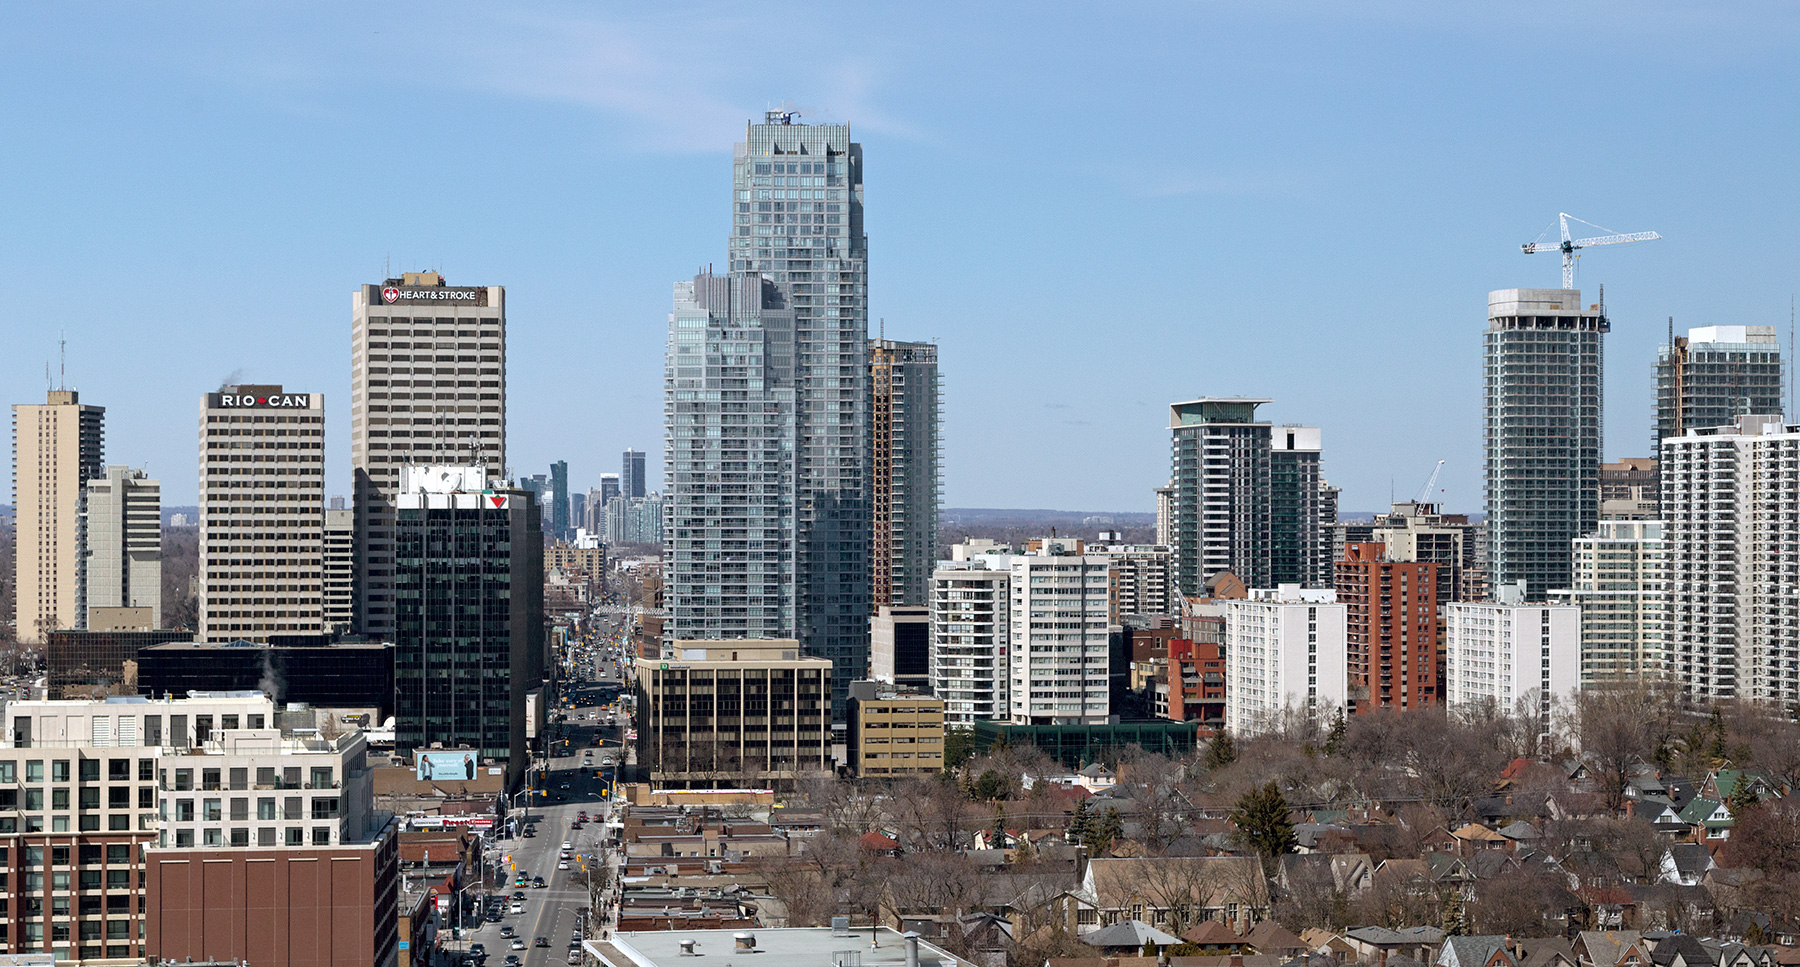 20160503. Toronto's Yonge and Eglinton skyline continues to rise